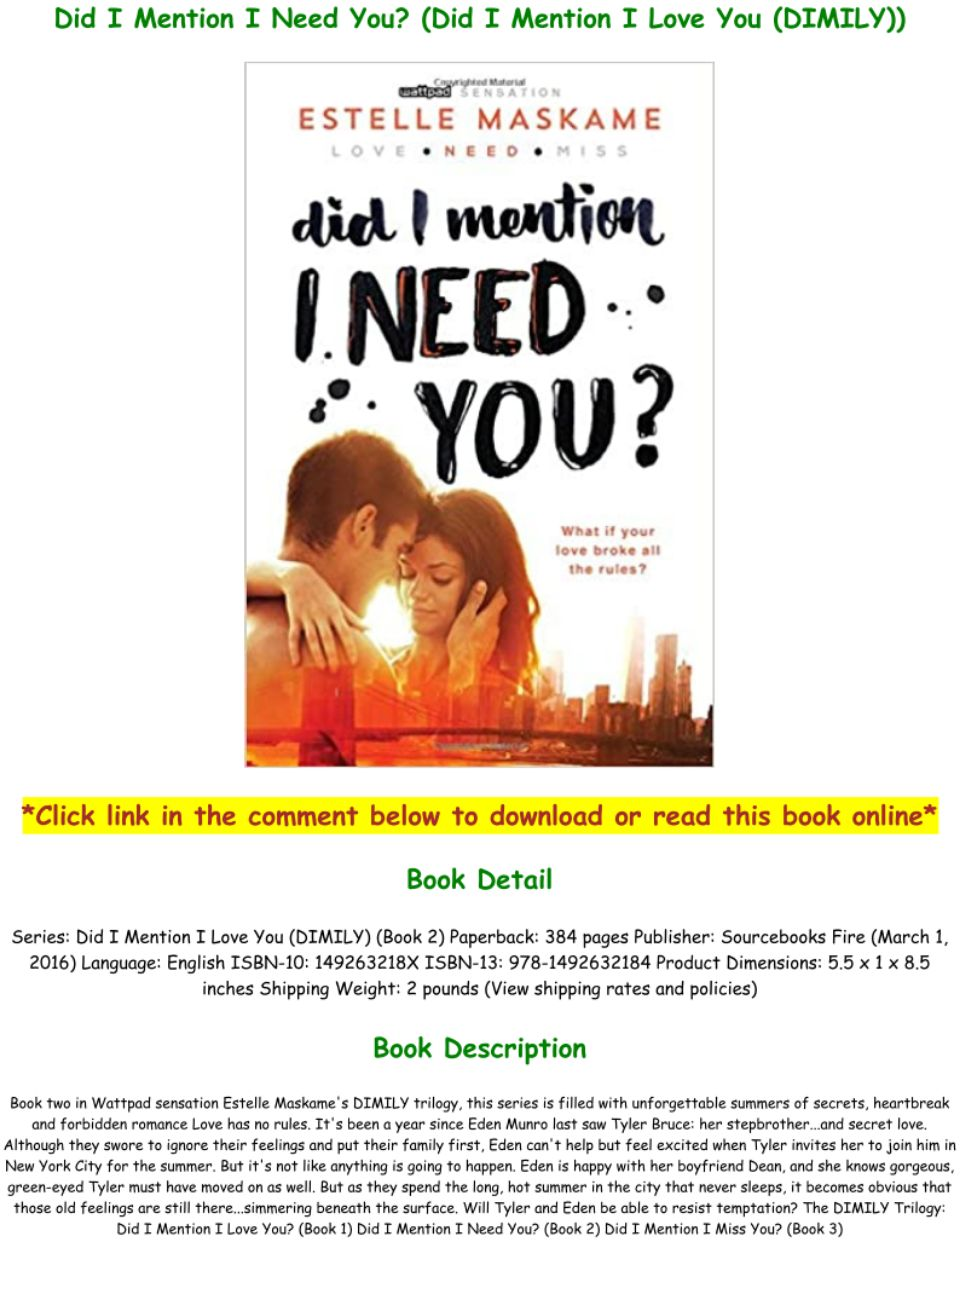 Did I Mention I Need You Pdf : mention, DOWNLOAD, $PDF$], Mention, (DIMILY)), Books:, Text,, Images,, Music,, Video, Glogster, Interactive, Multimedia, Posters